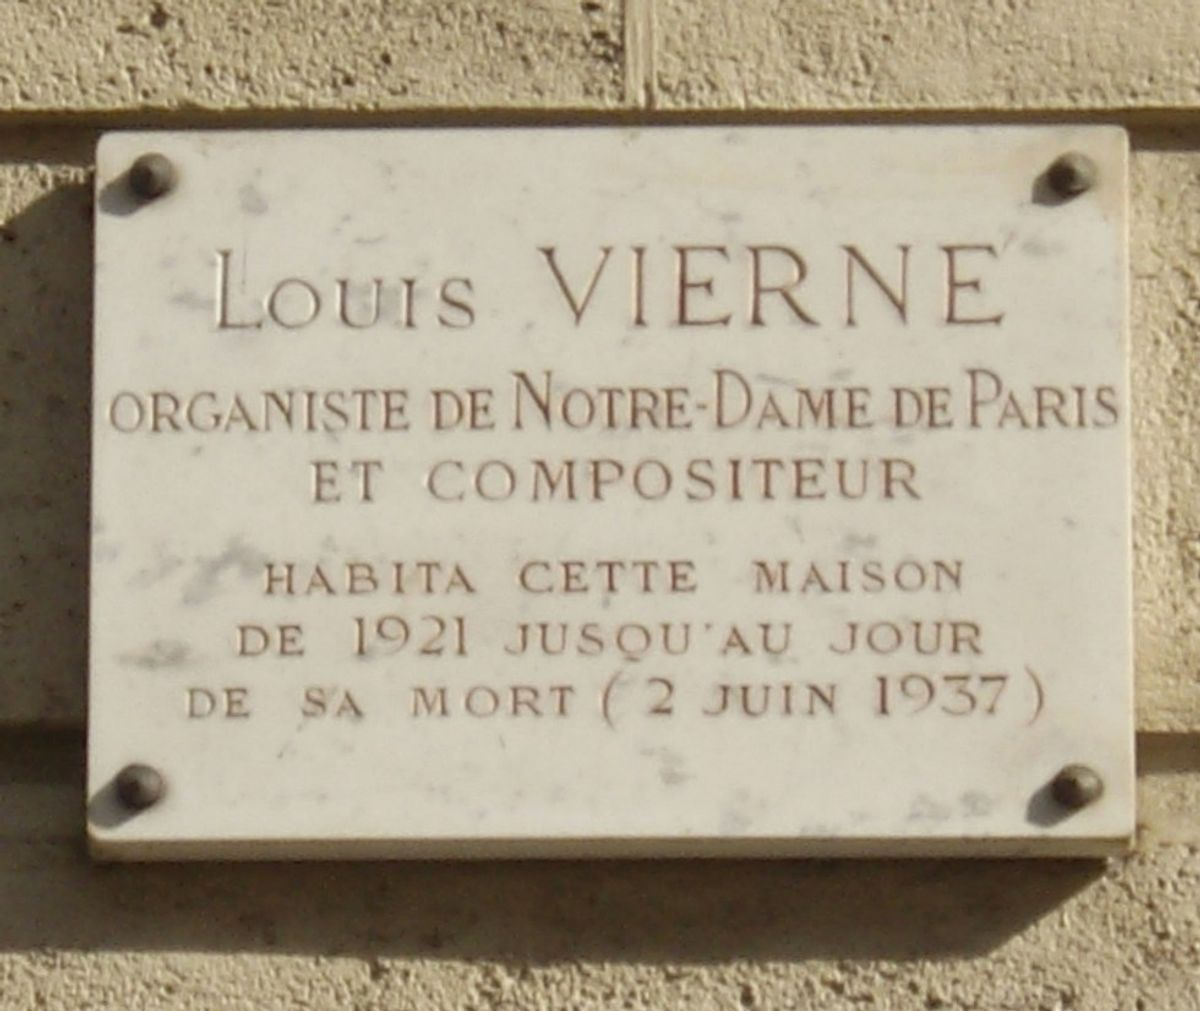 The Most Epic Death In Music History: Louis Vierne